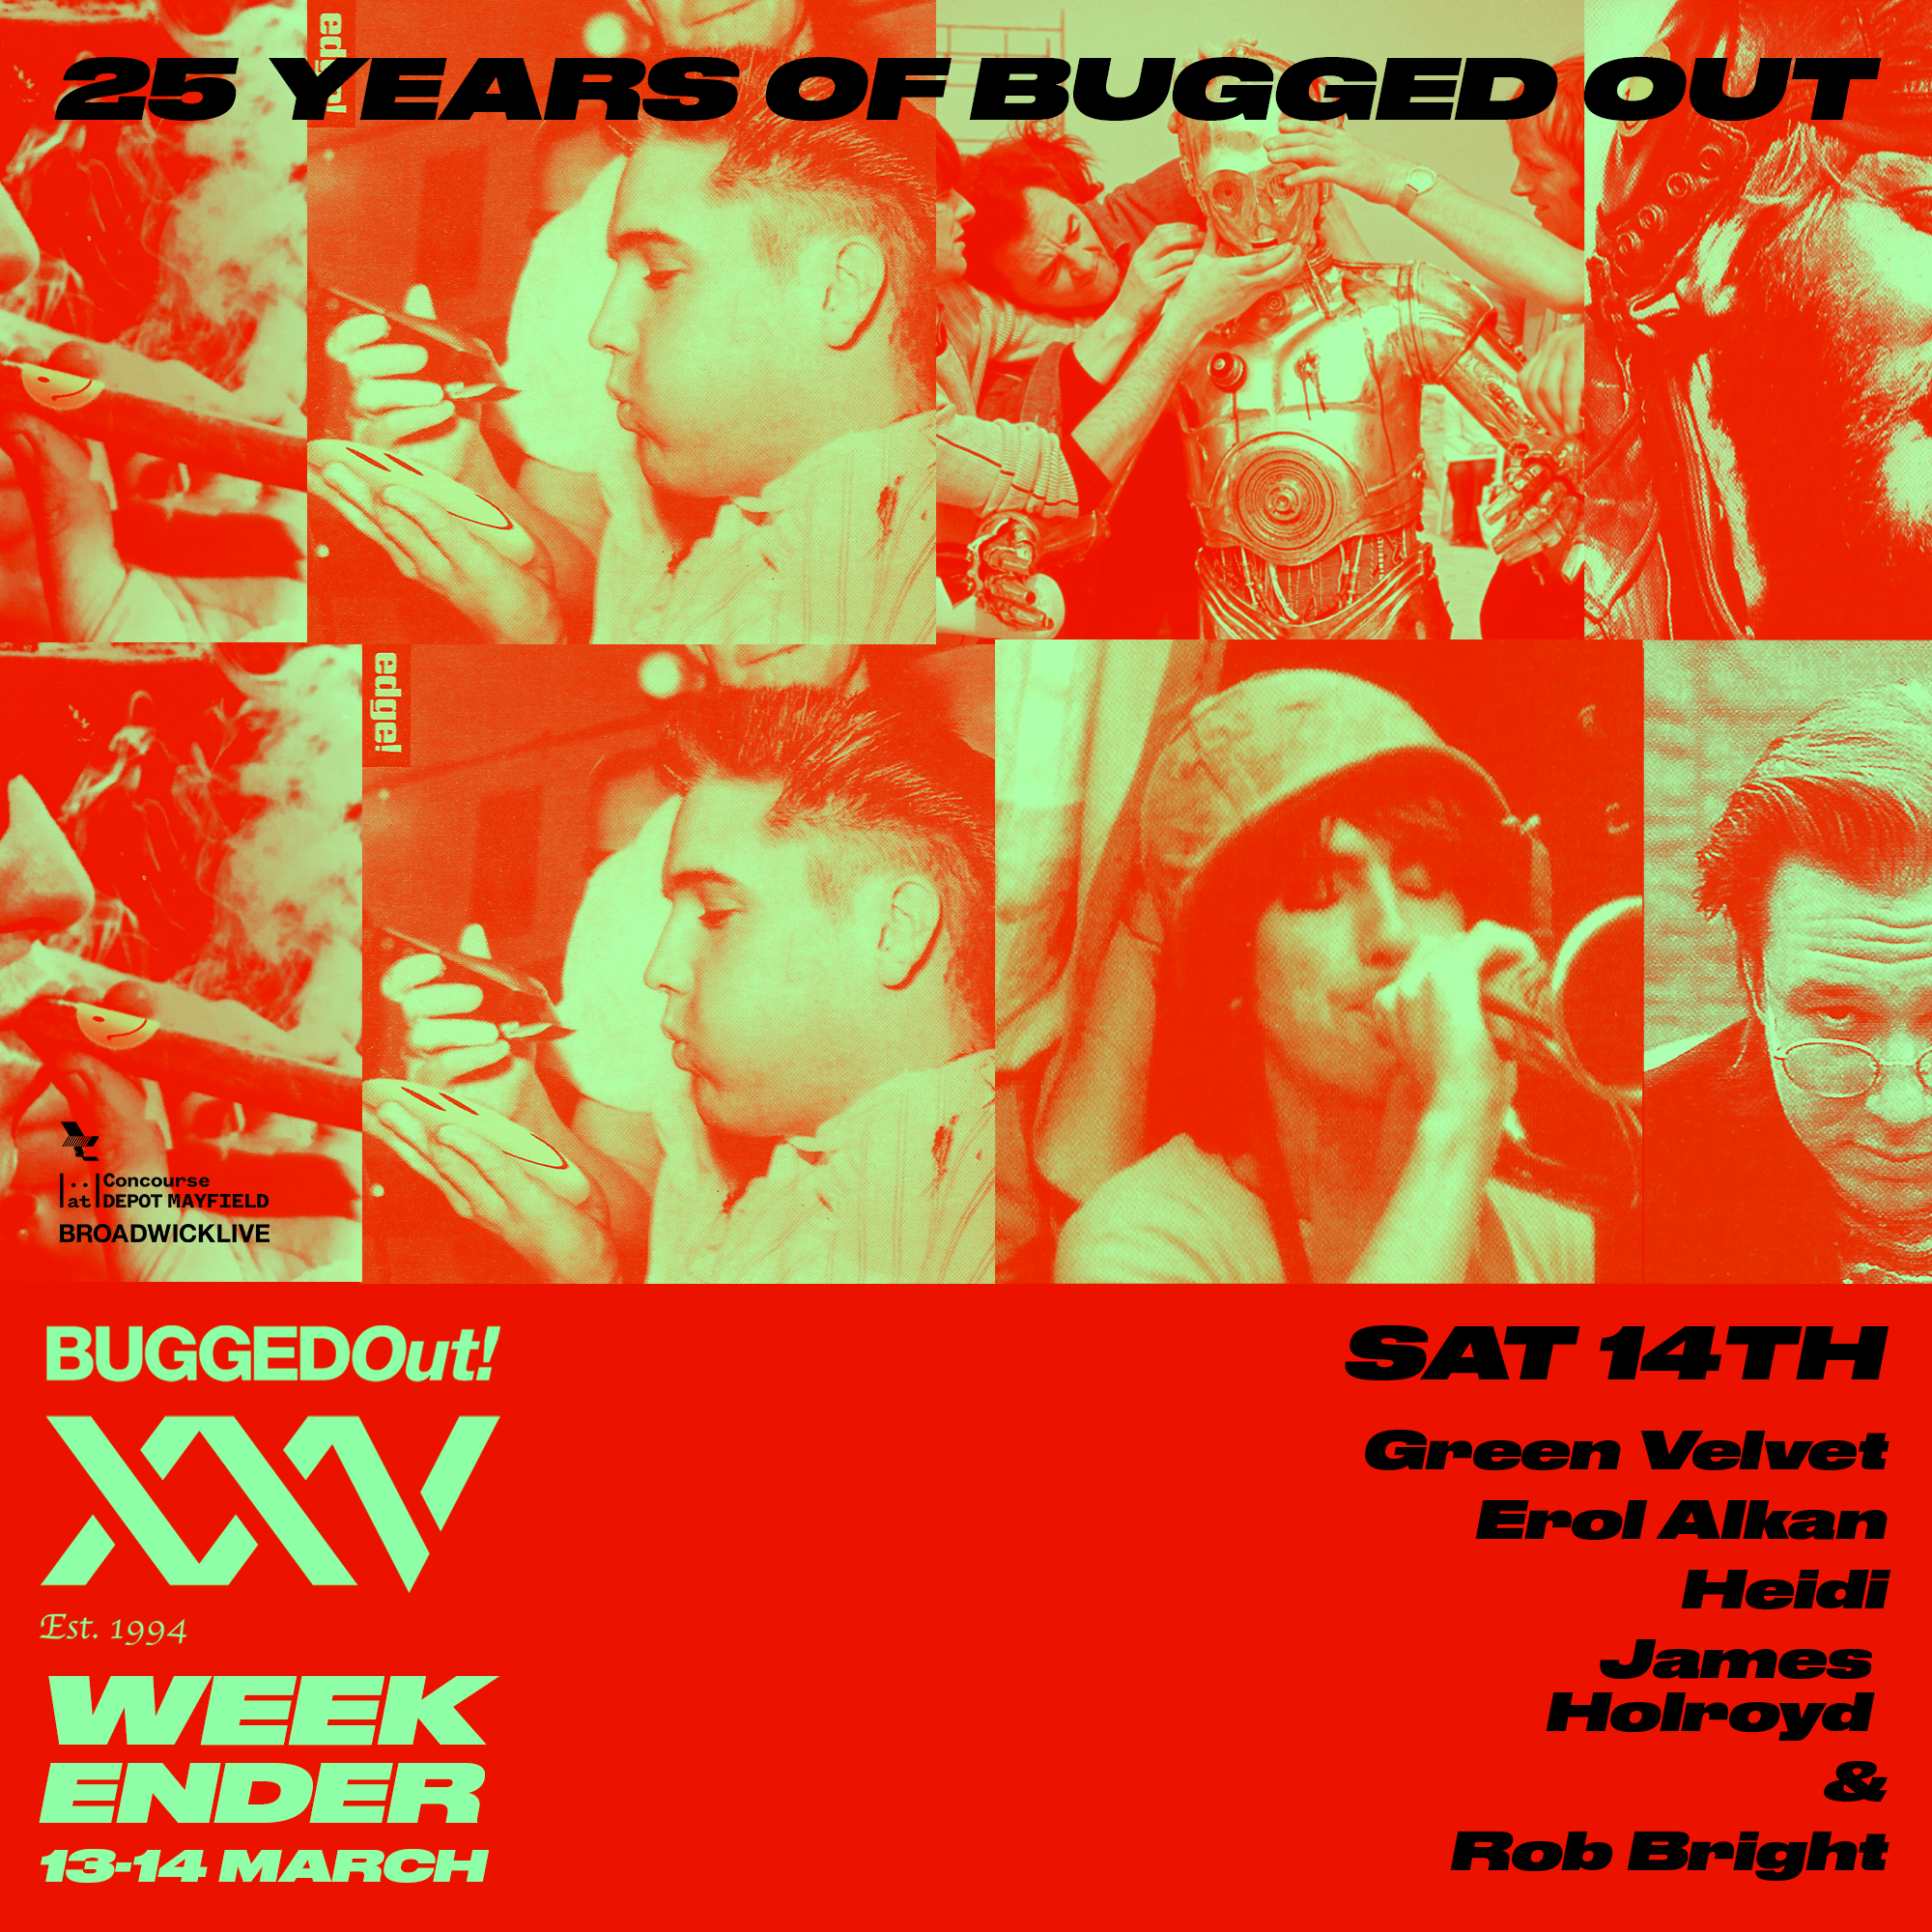 25 Years Of Bugged Out - 14th March 2020